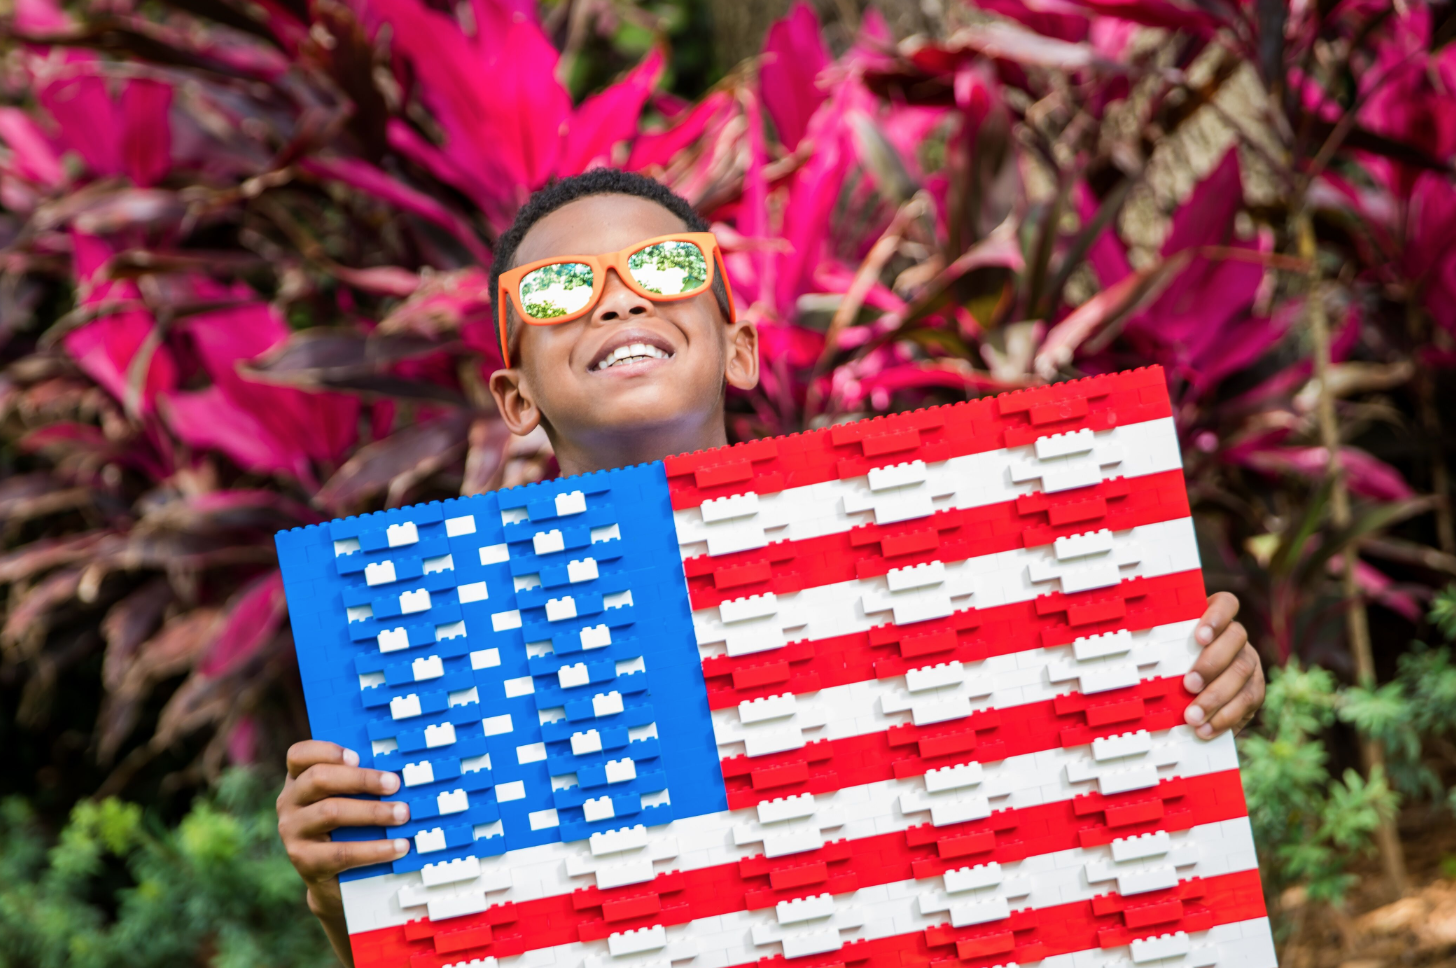 Veterans discounts LEGOLAND Florida: image of child holding American Flag made out of LEGOS